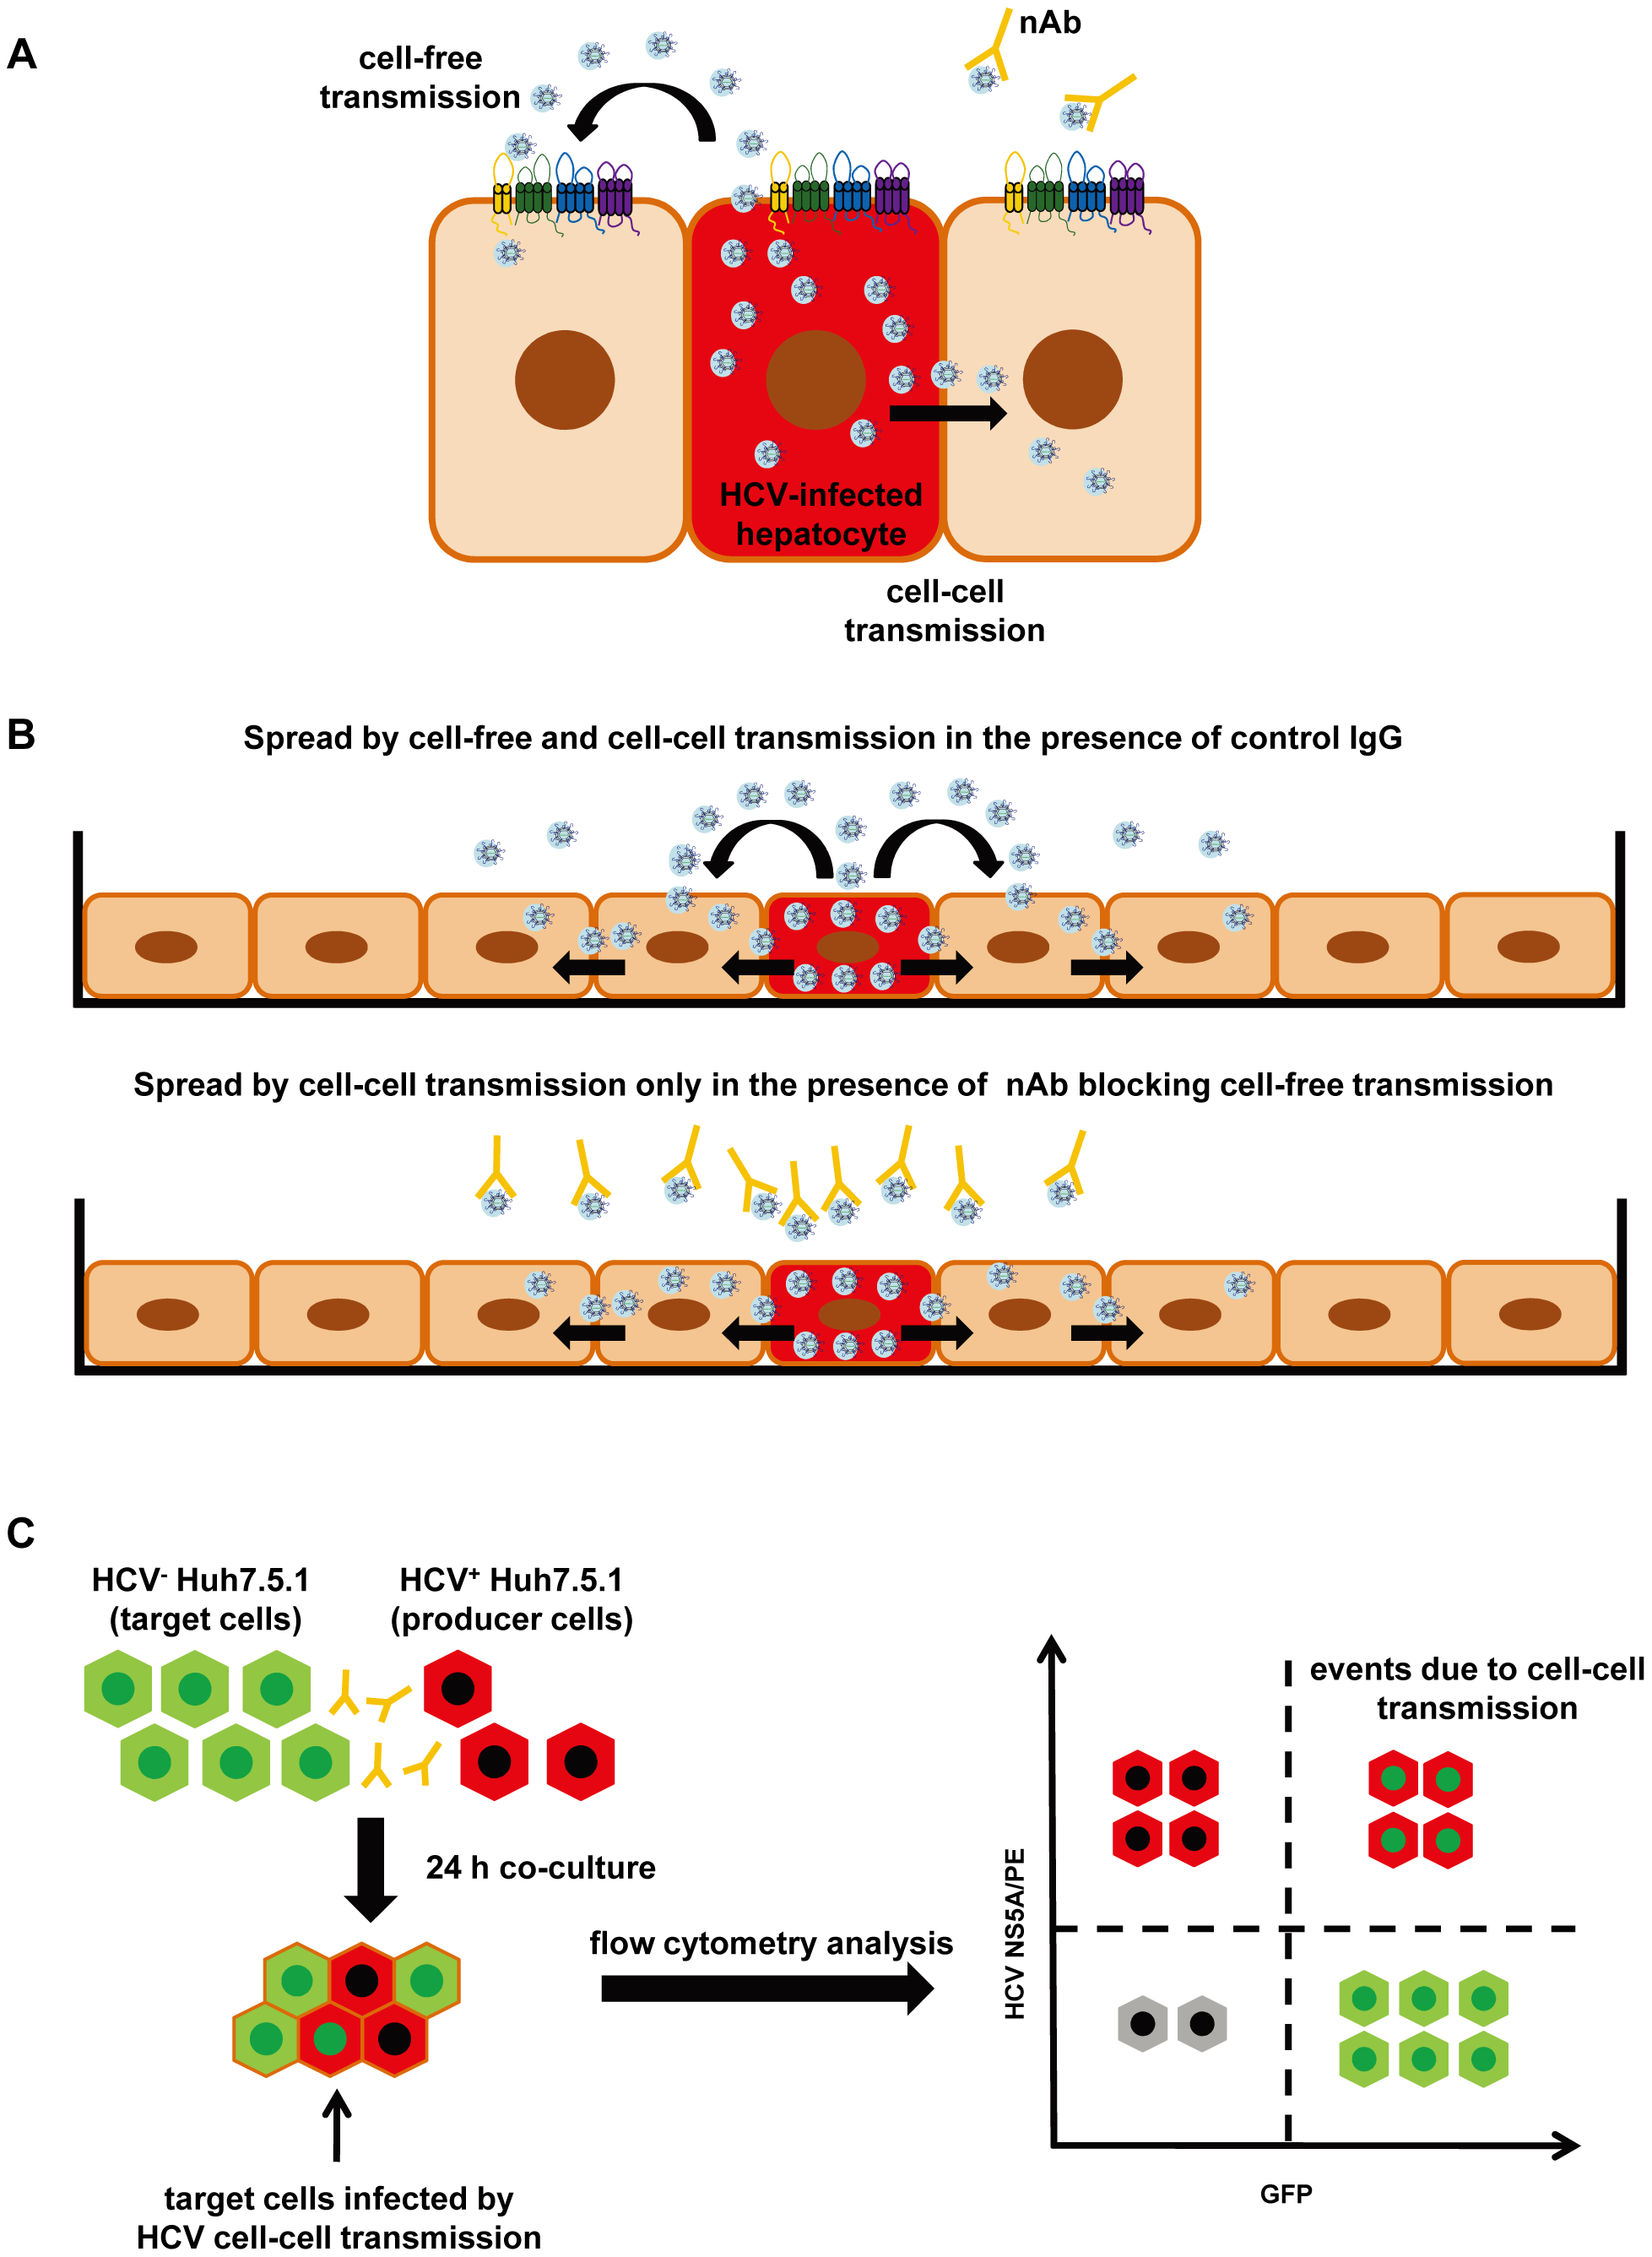 Cell culture model systems for analysis of HCV dissemination and cell-cell transmission.